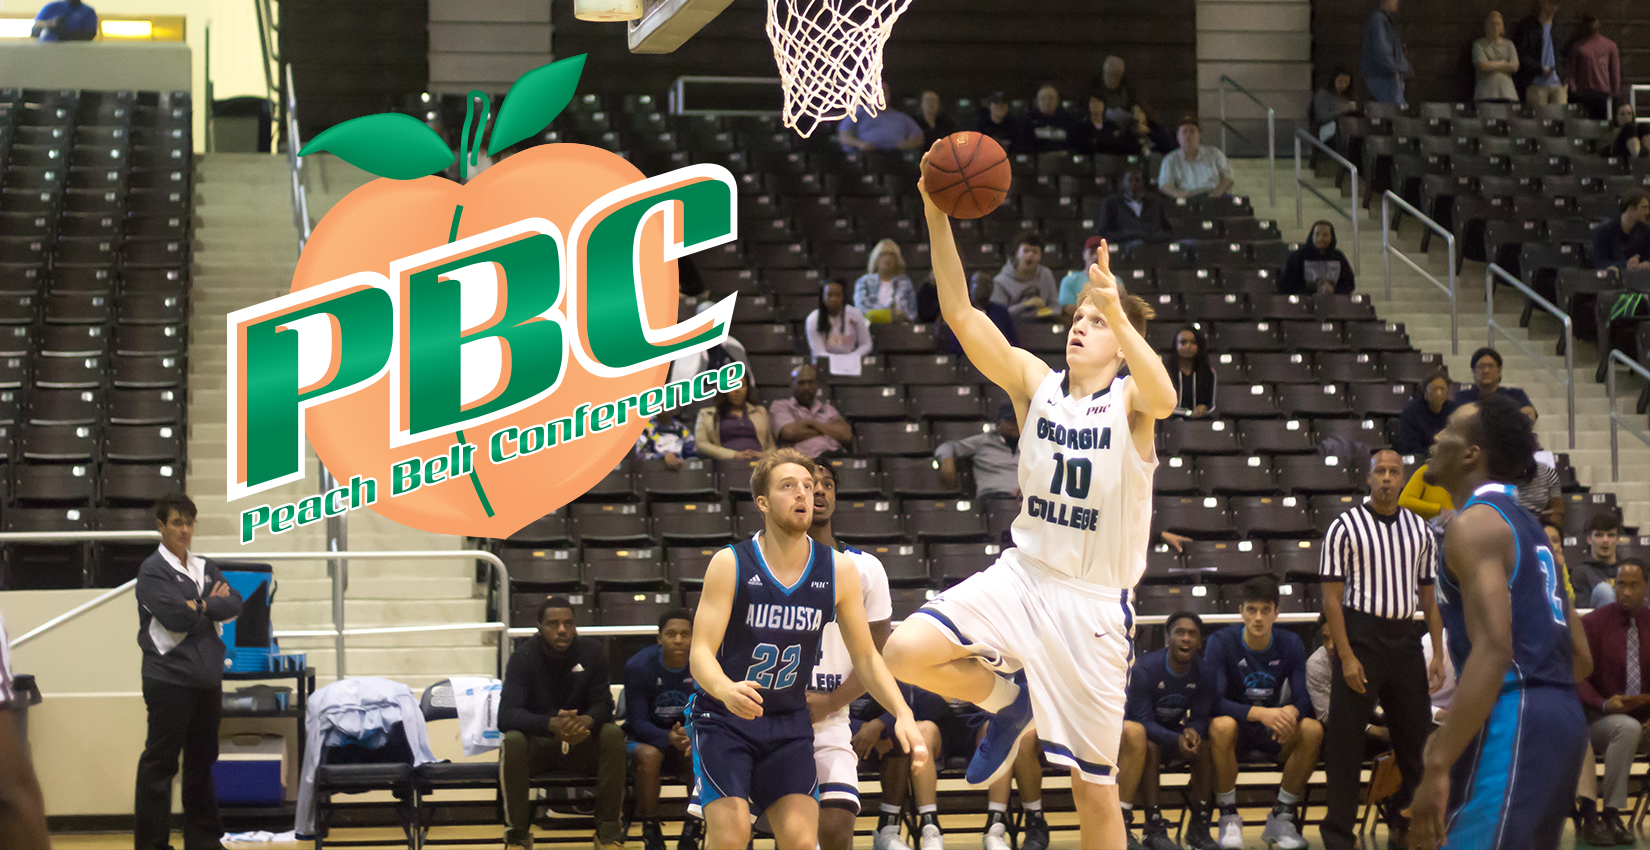 Bobcat Men's Basketball Season Preview